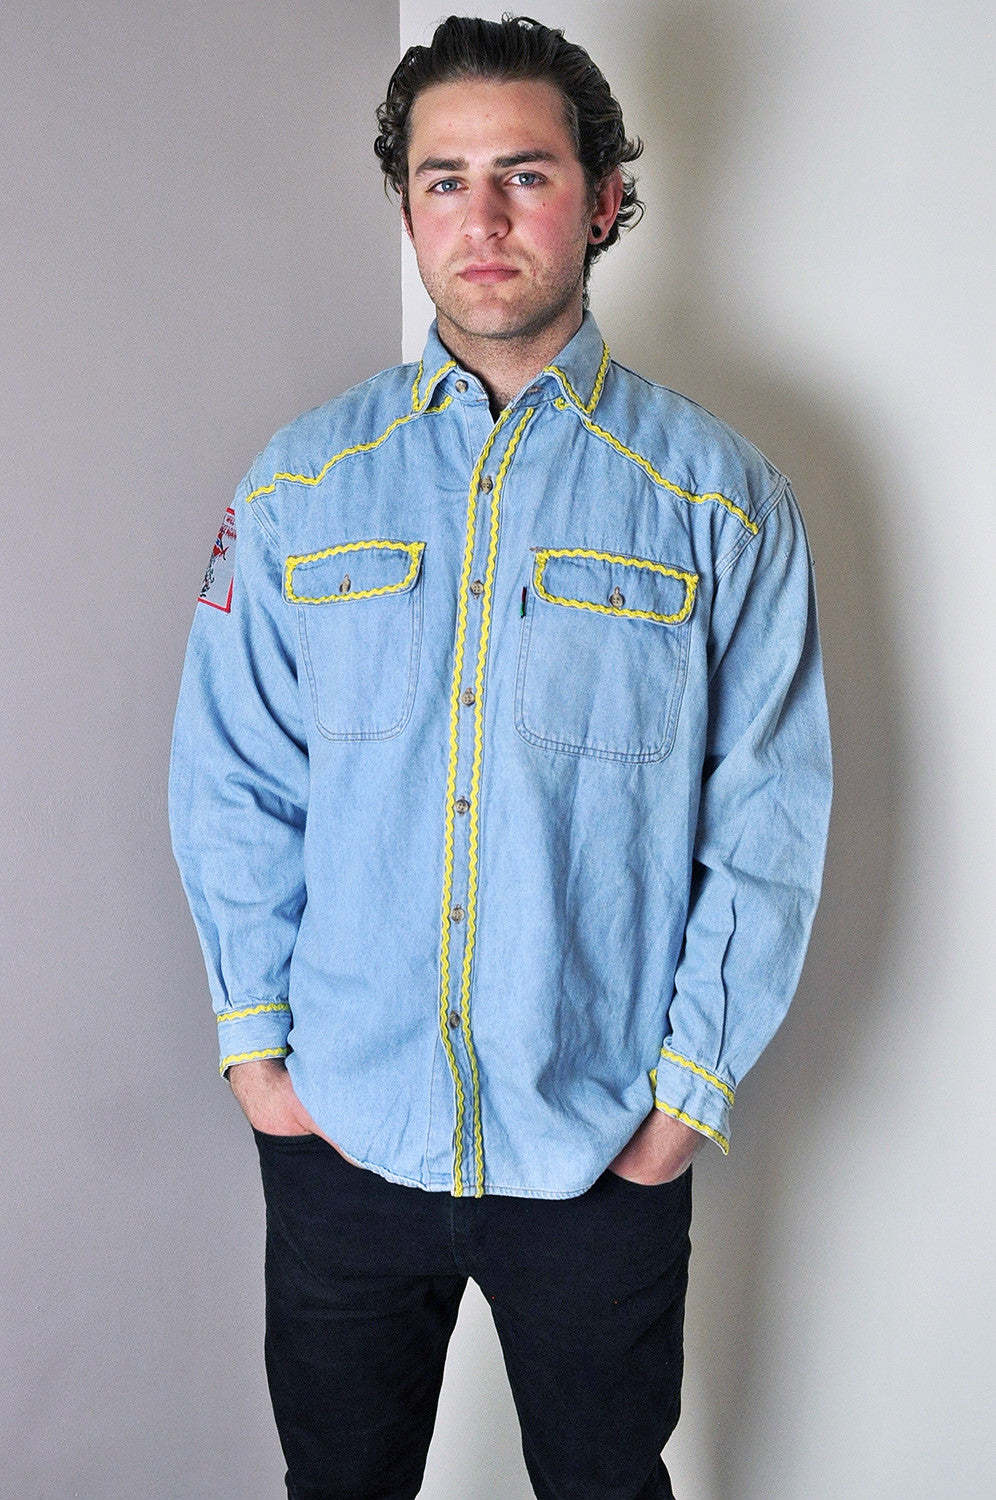 Vintage Western Style Long Sleeve Denim Shirt with Patches